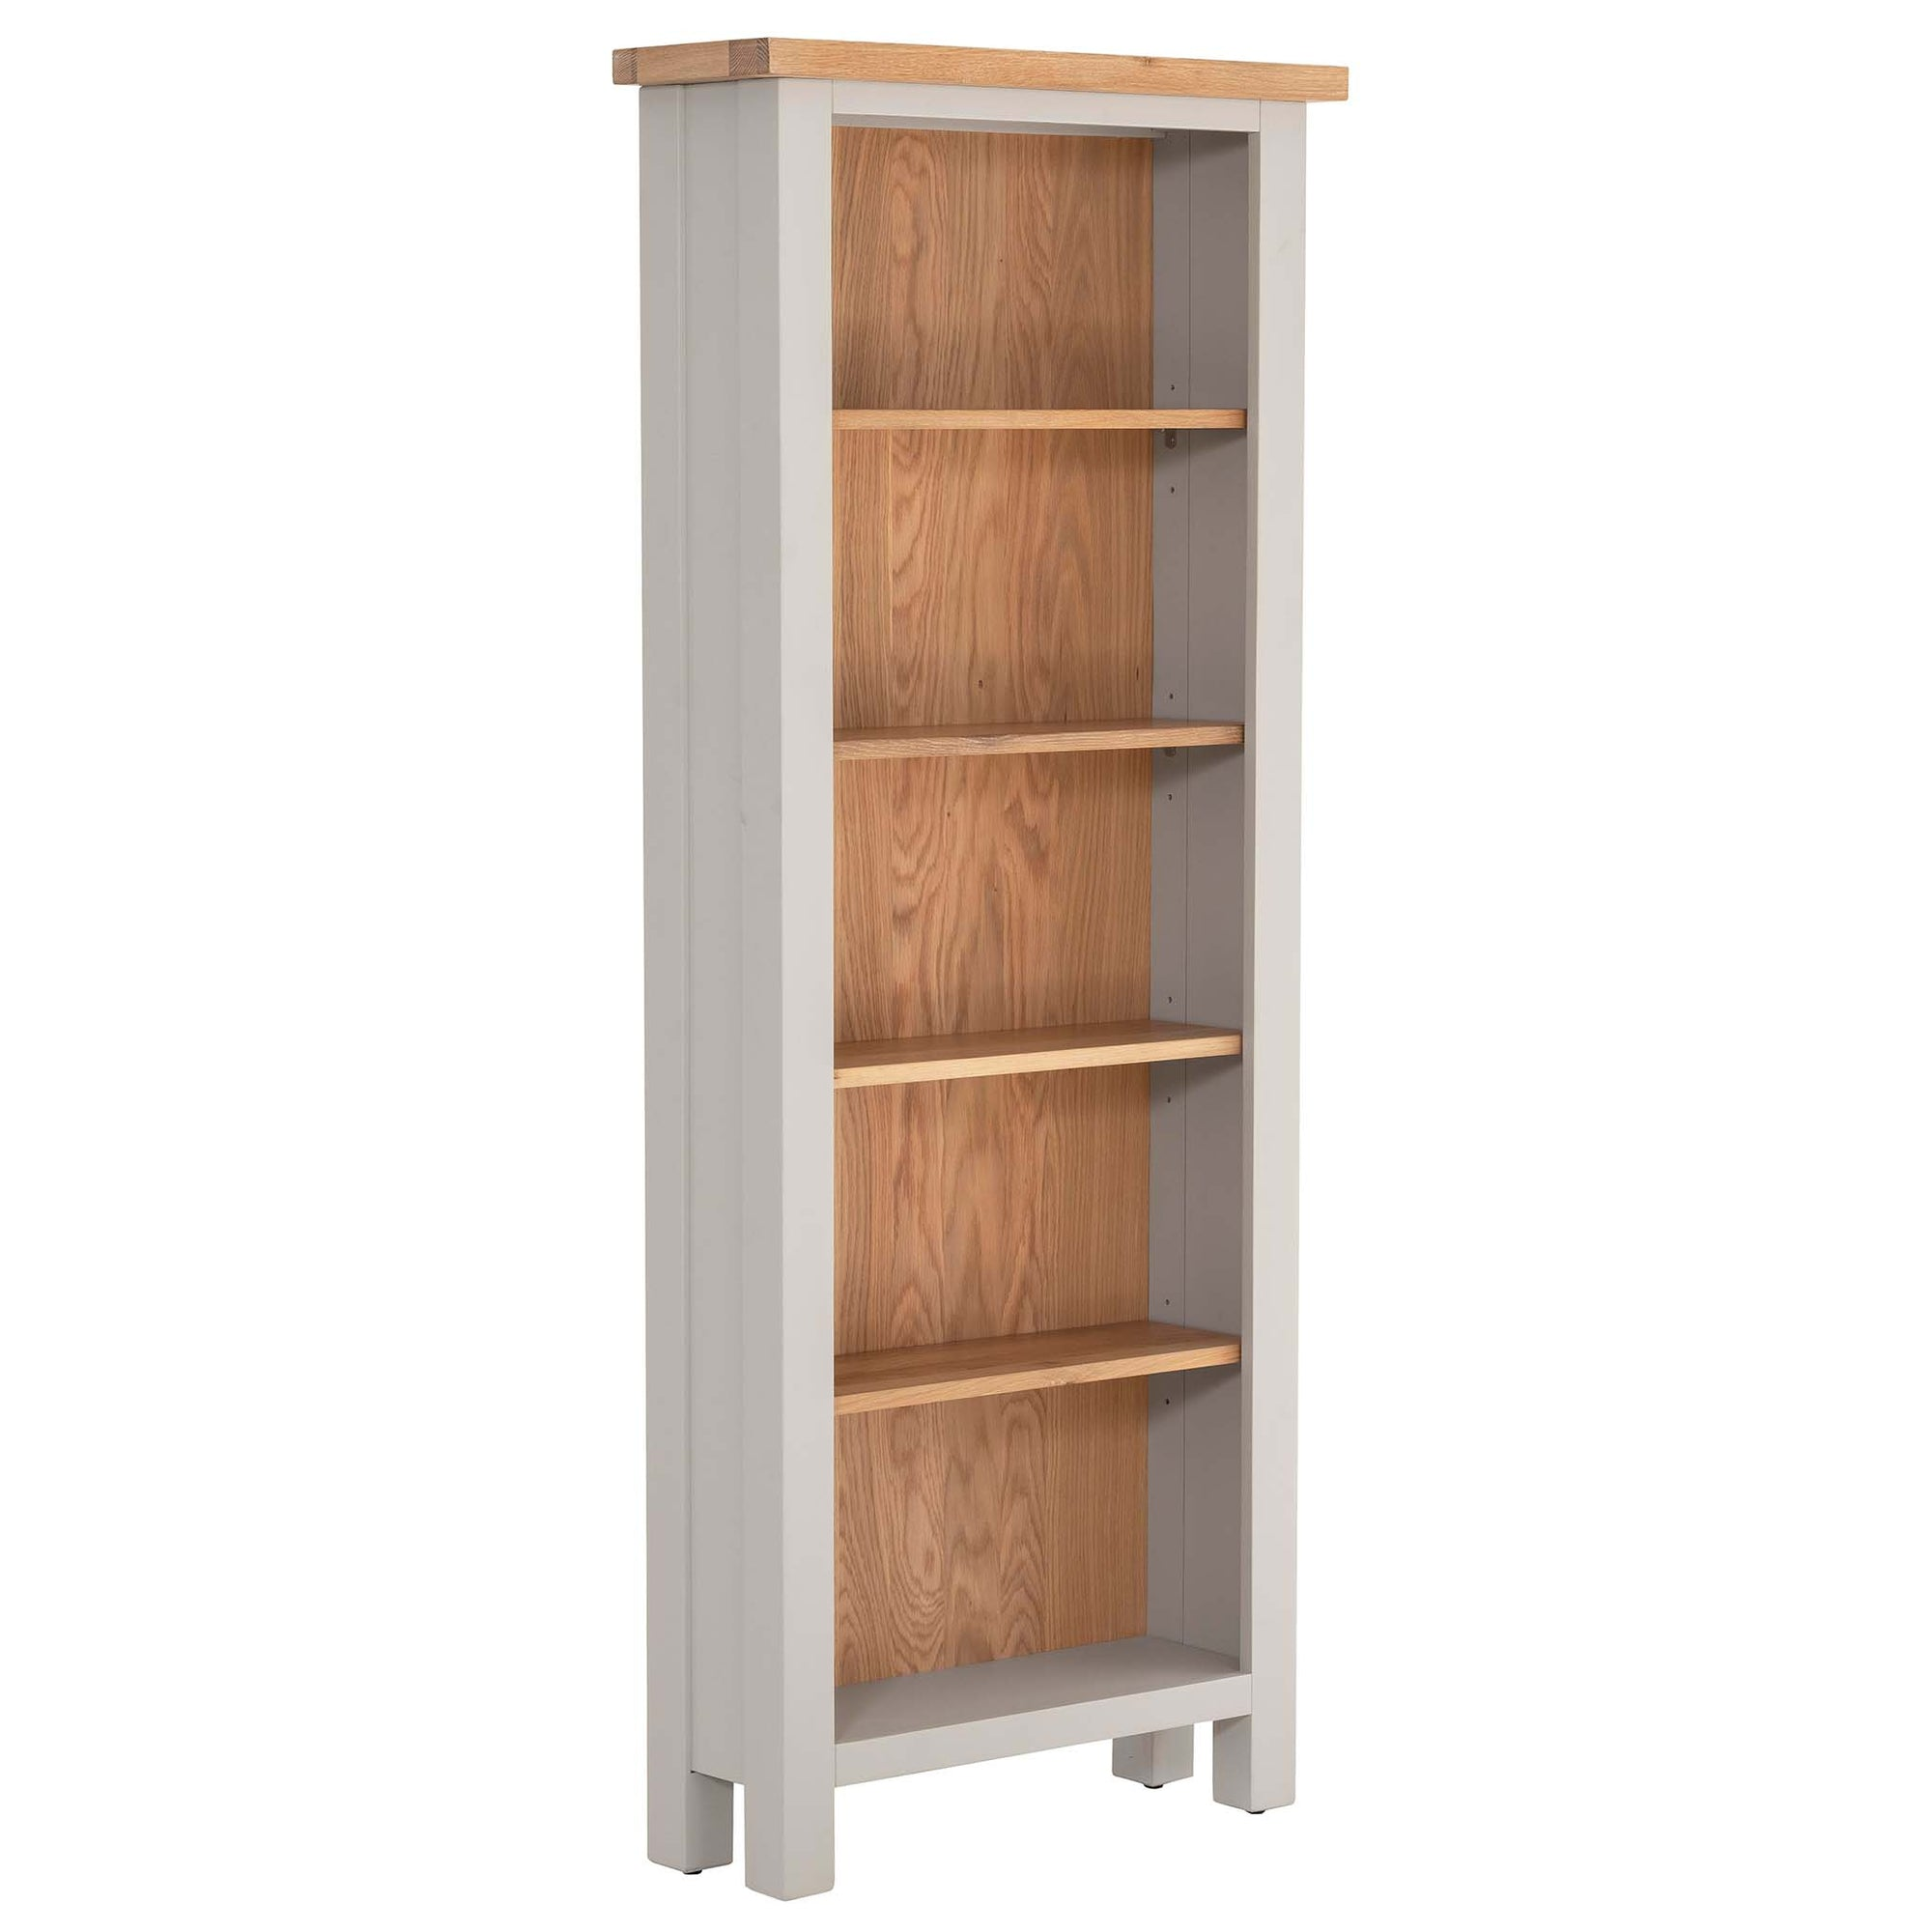 Charlestown Grey Large Bookcase with 5 Shelves from Roseland Furniture